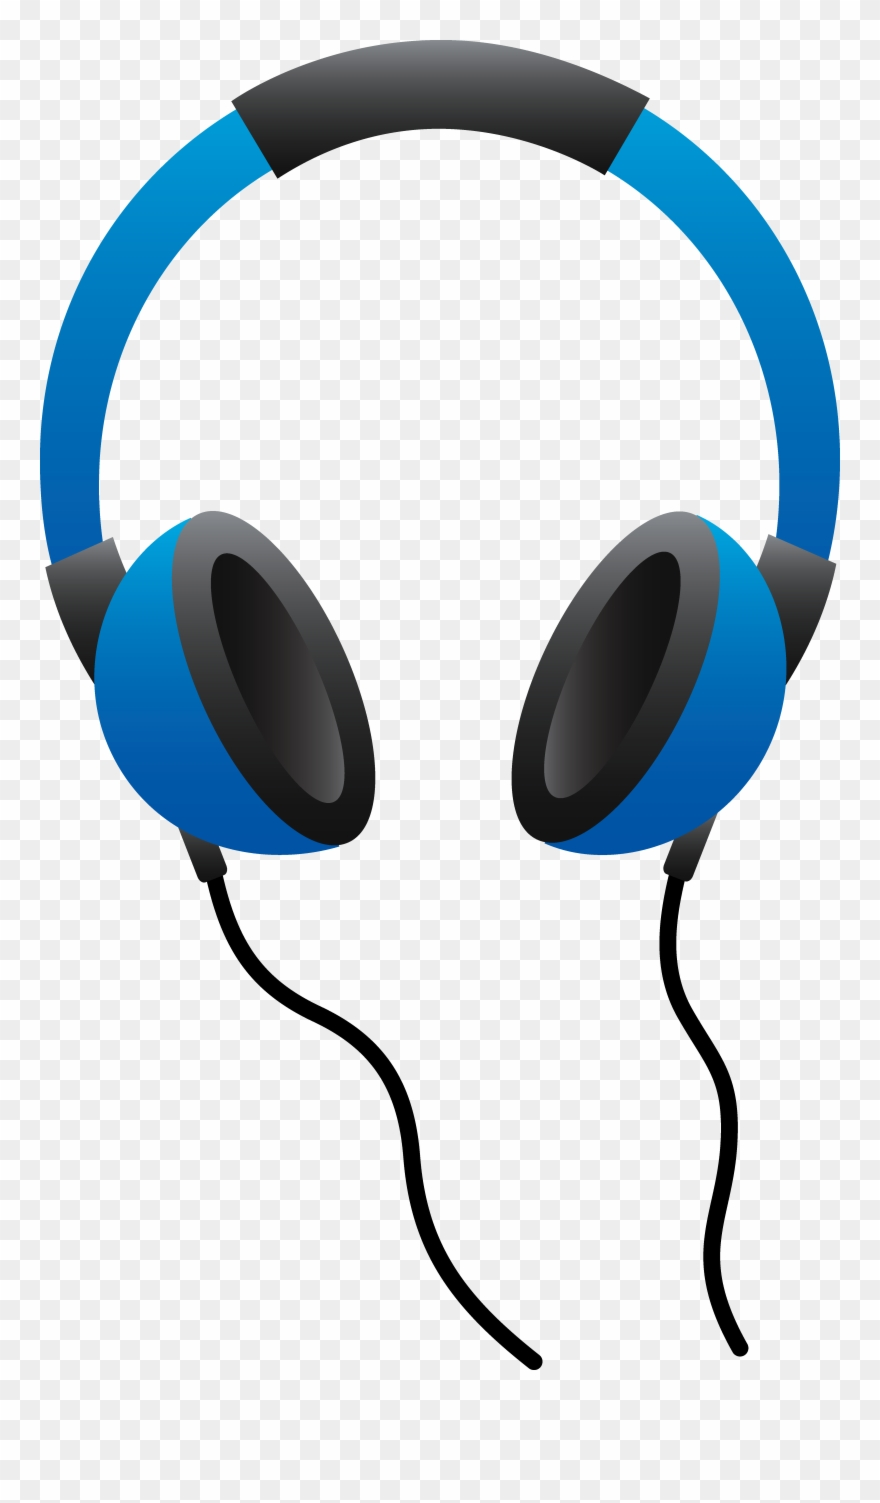 Headphones clipart clip art. Listening ear png download